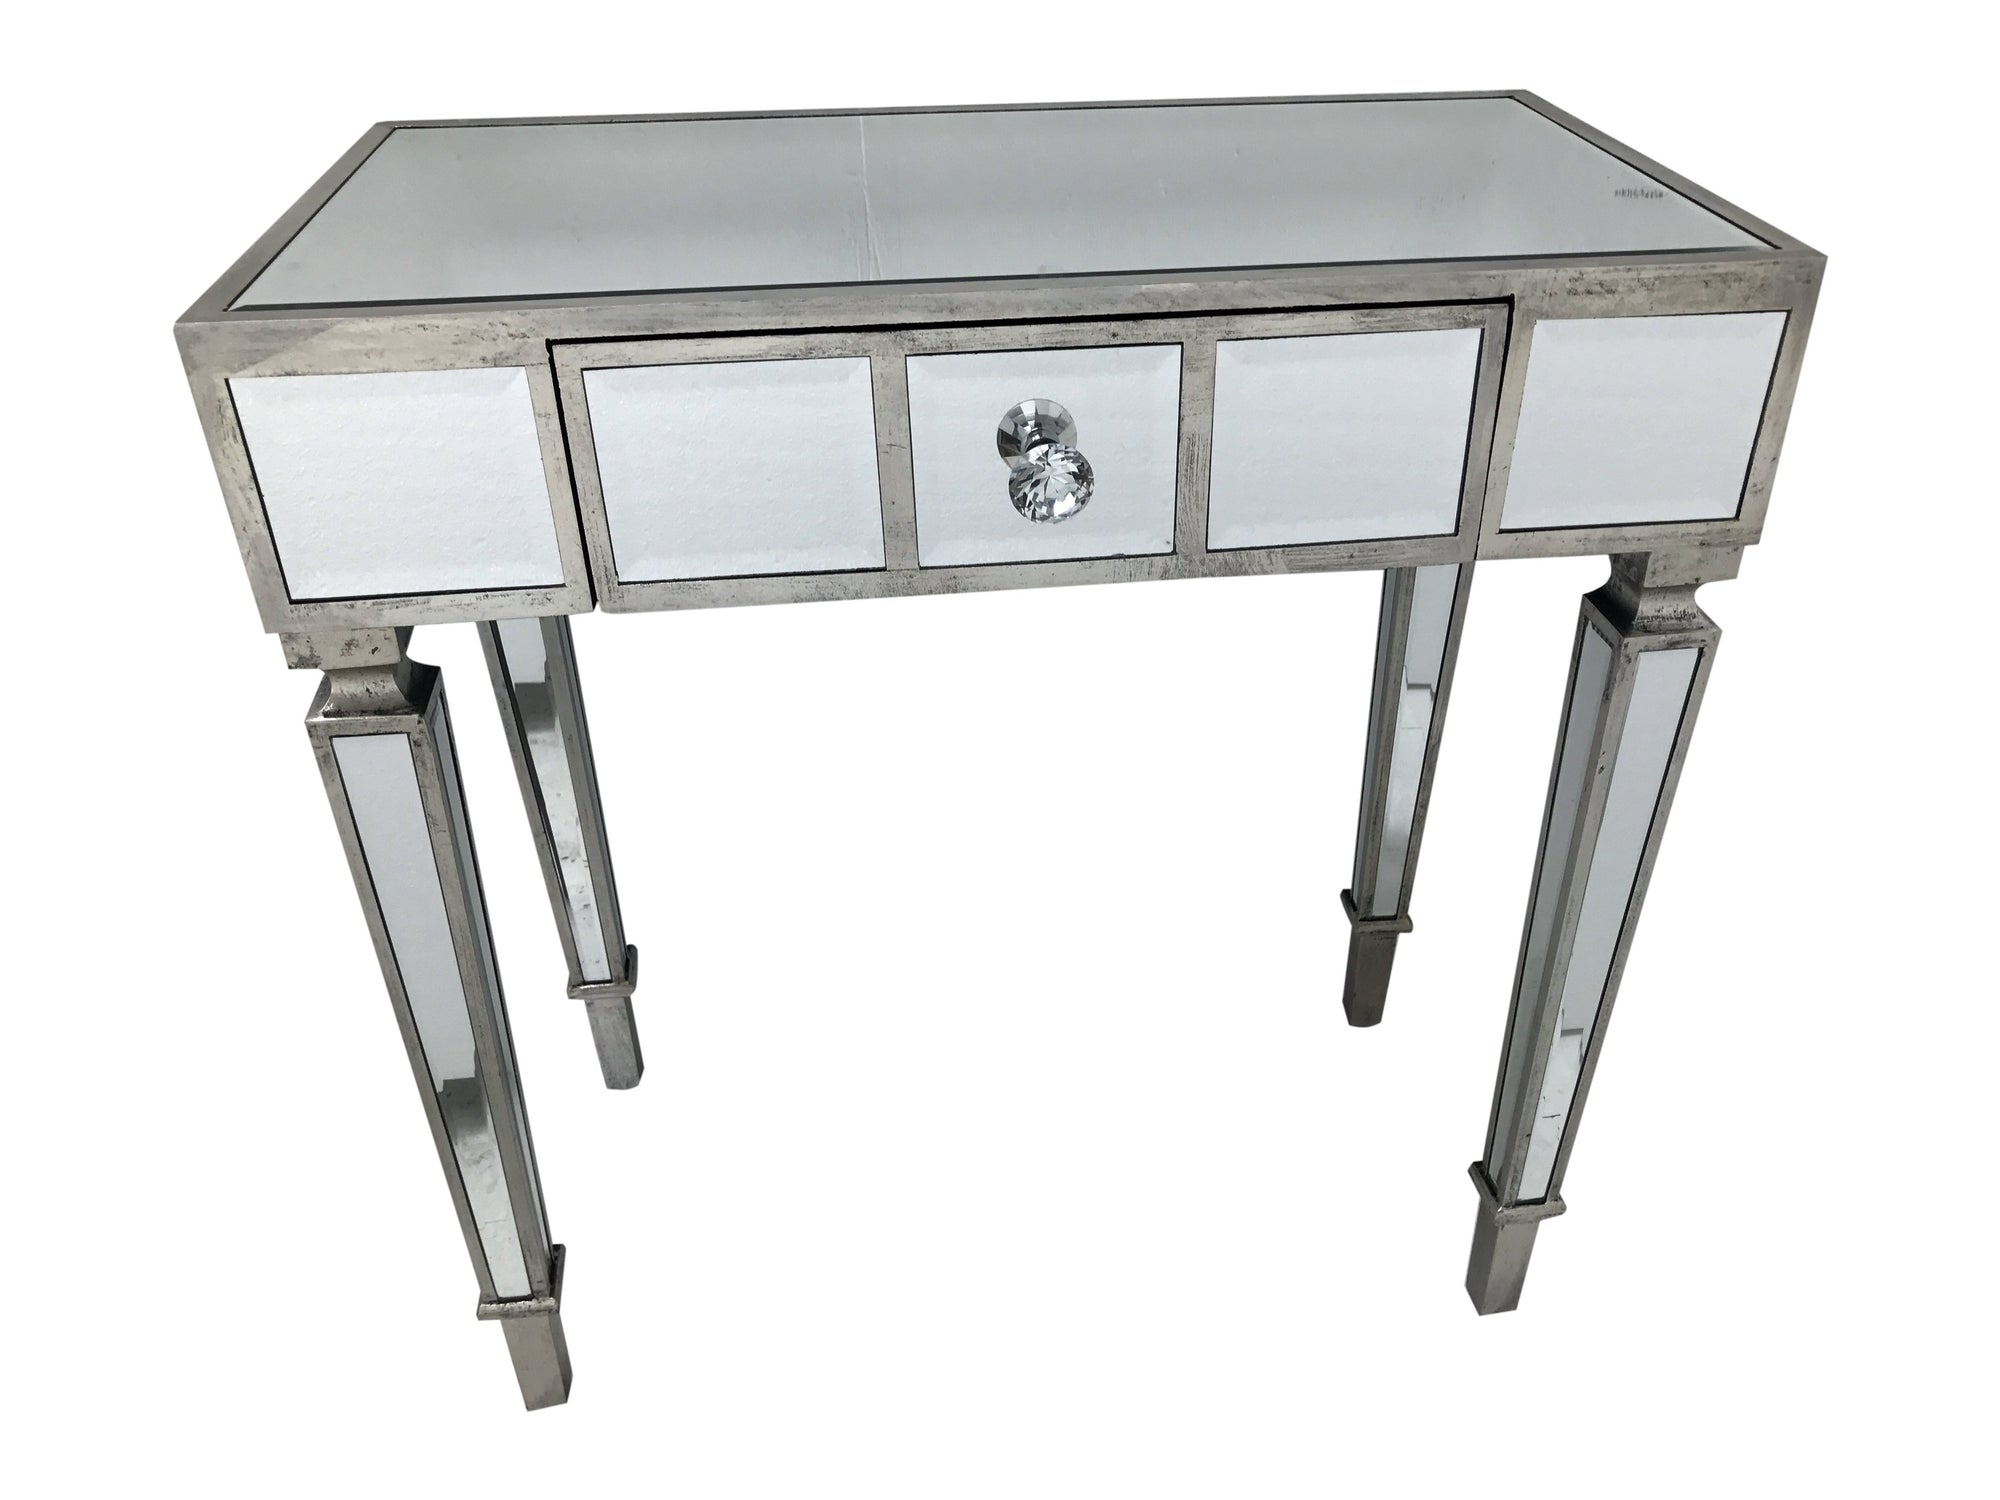 Mirrored Console Table with a single drawer and diamante handle